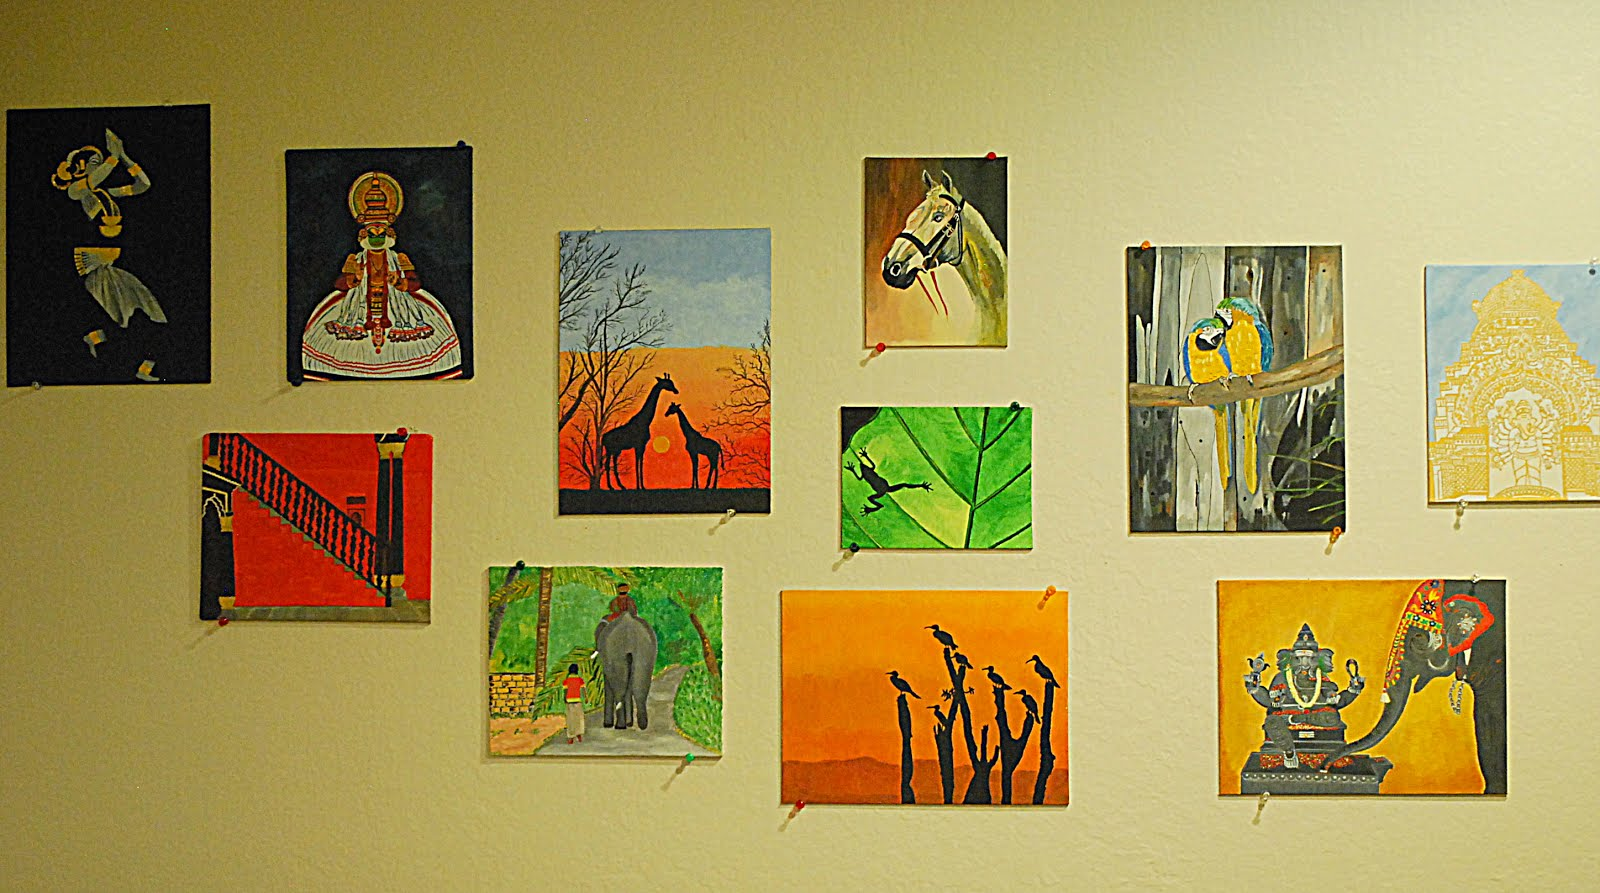 The 'oil on canvas' wall